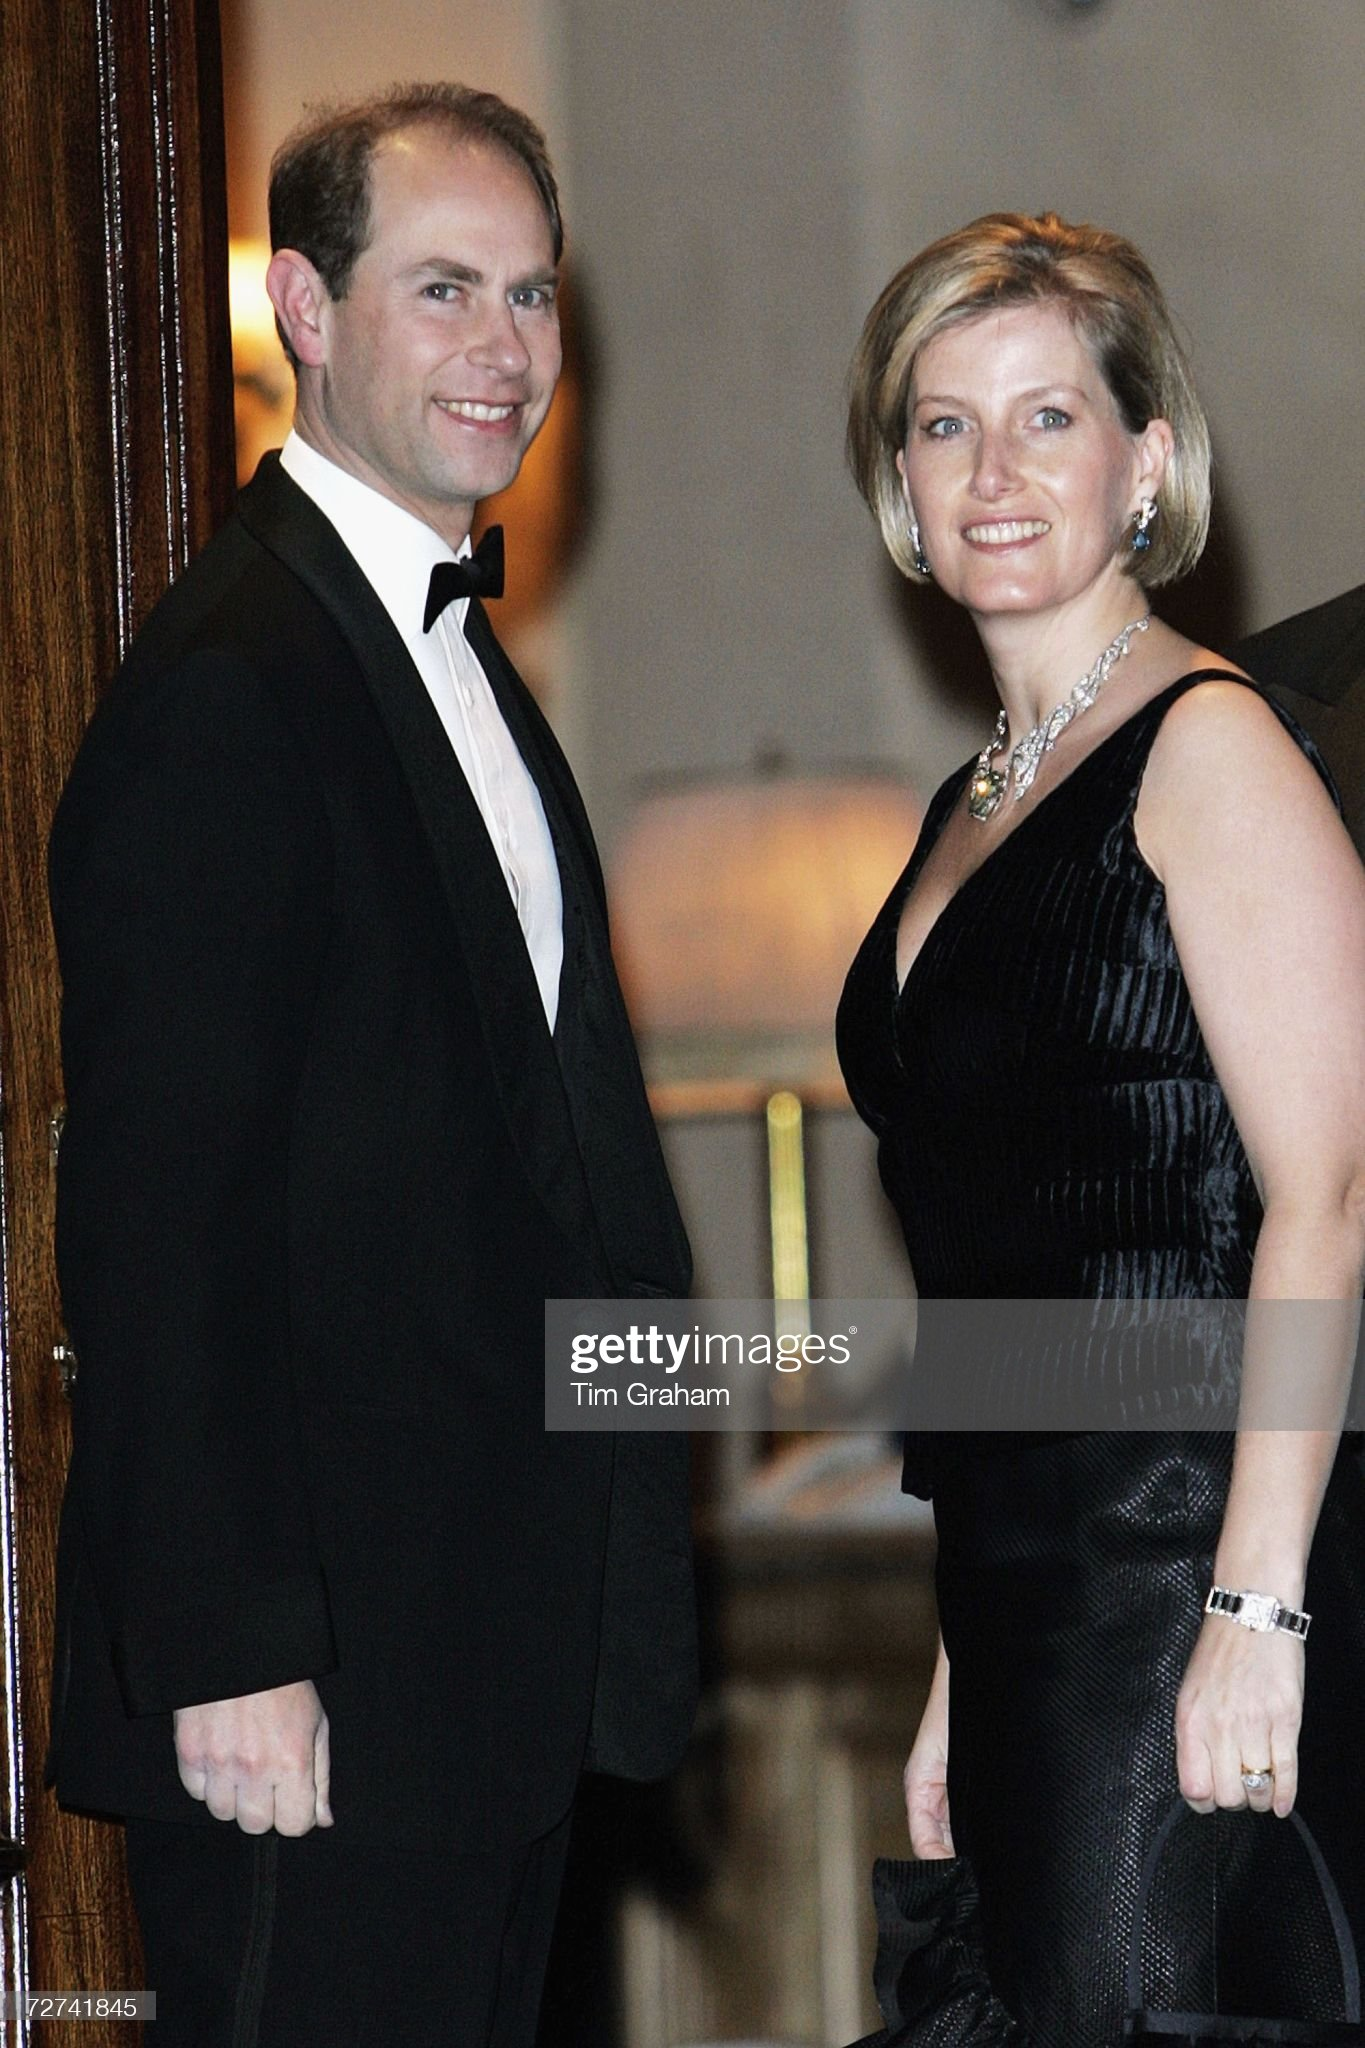 Earl & Countess of Wessex at Ritz Party : News Photo